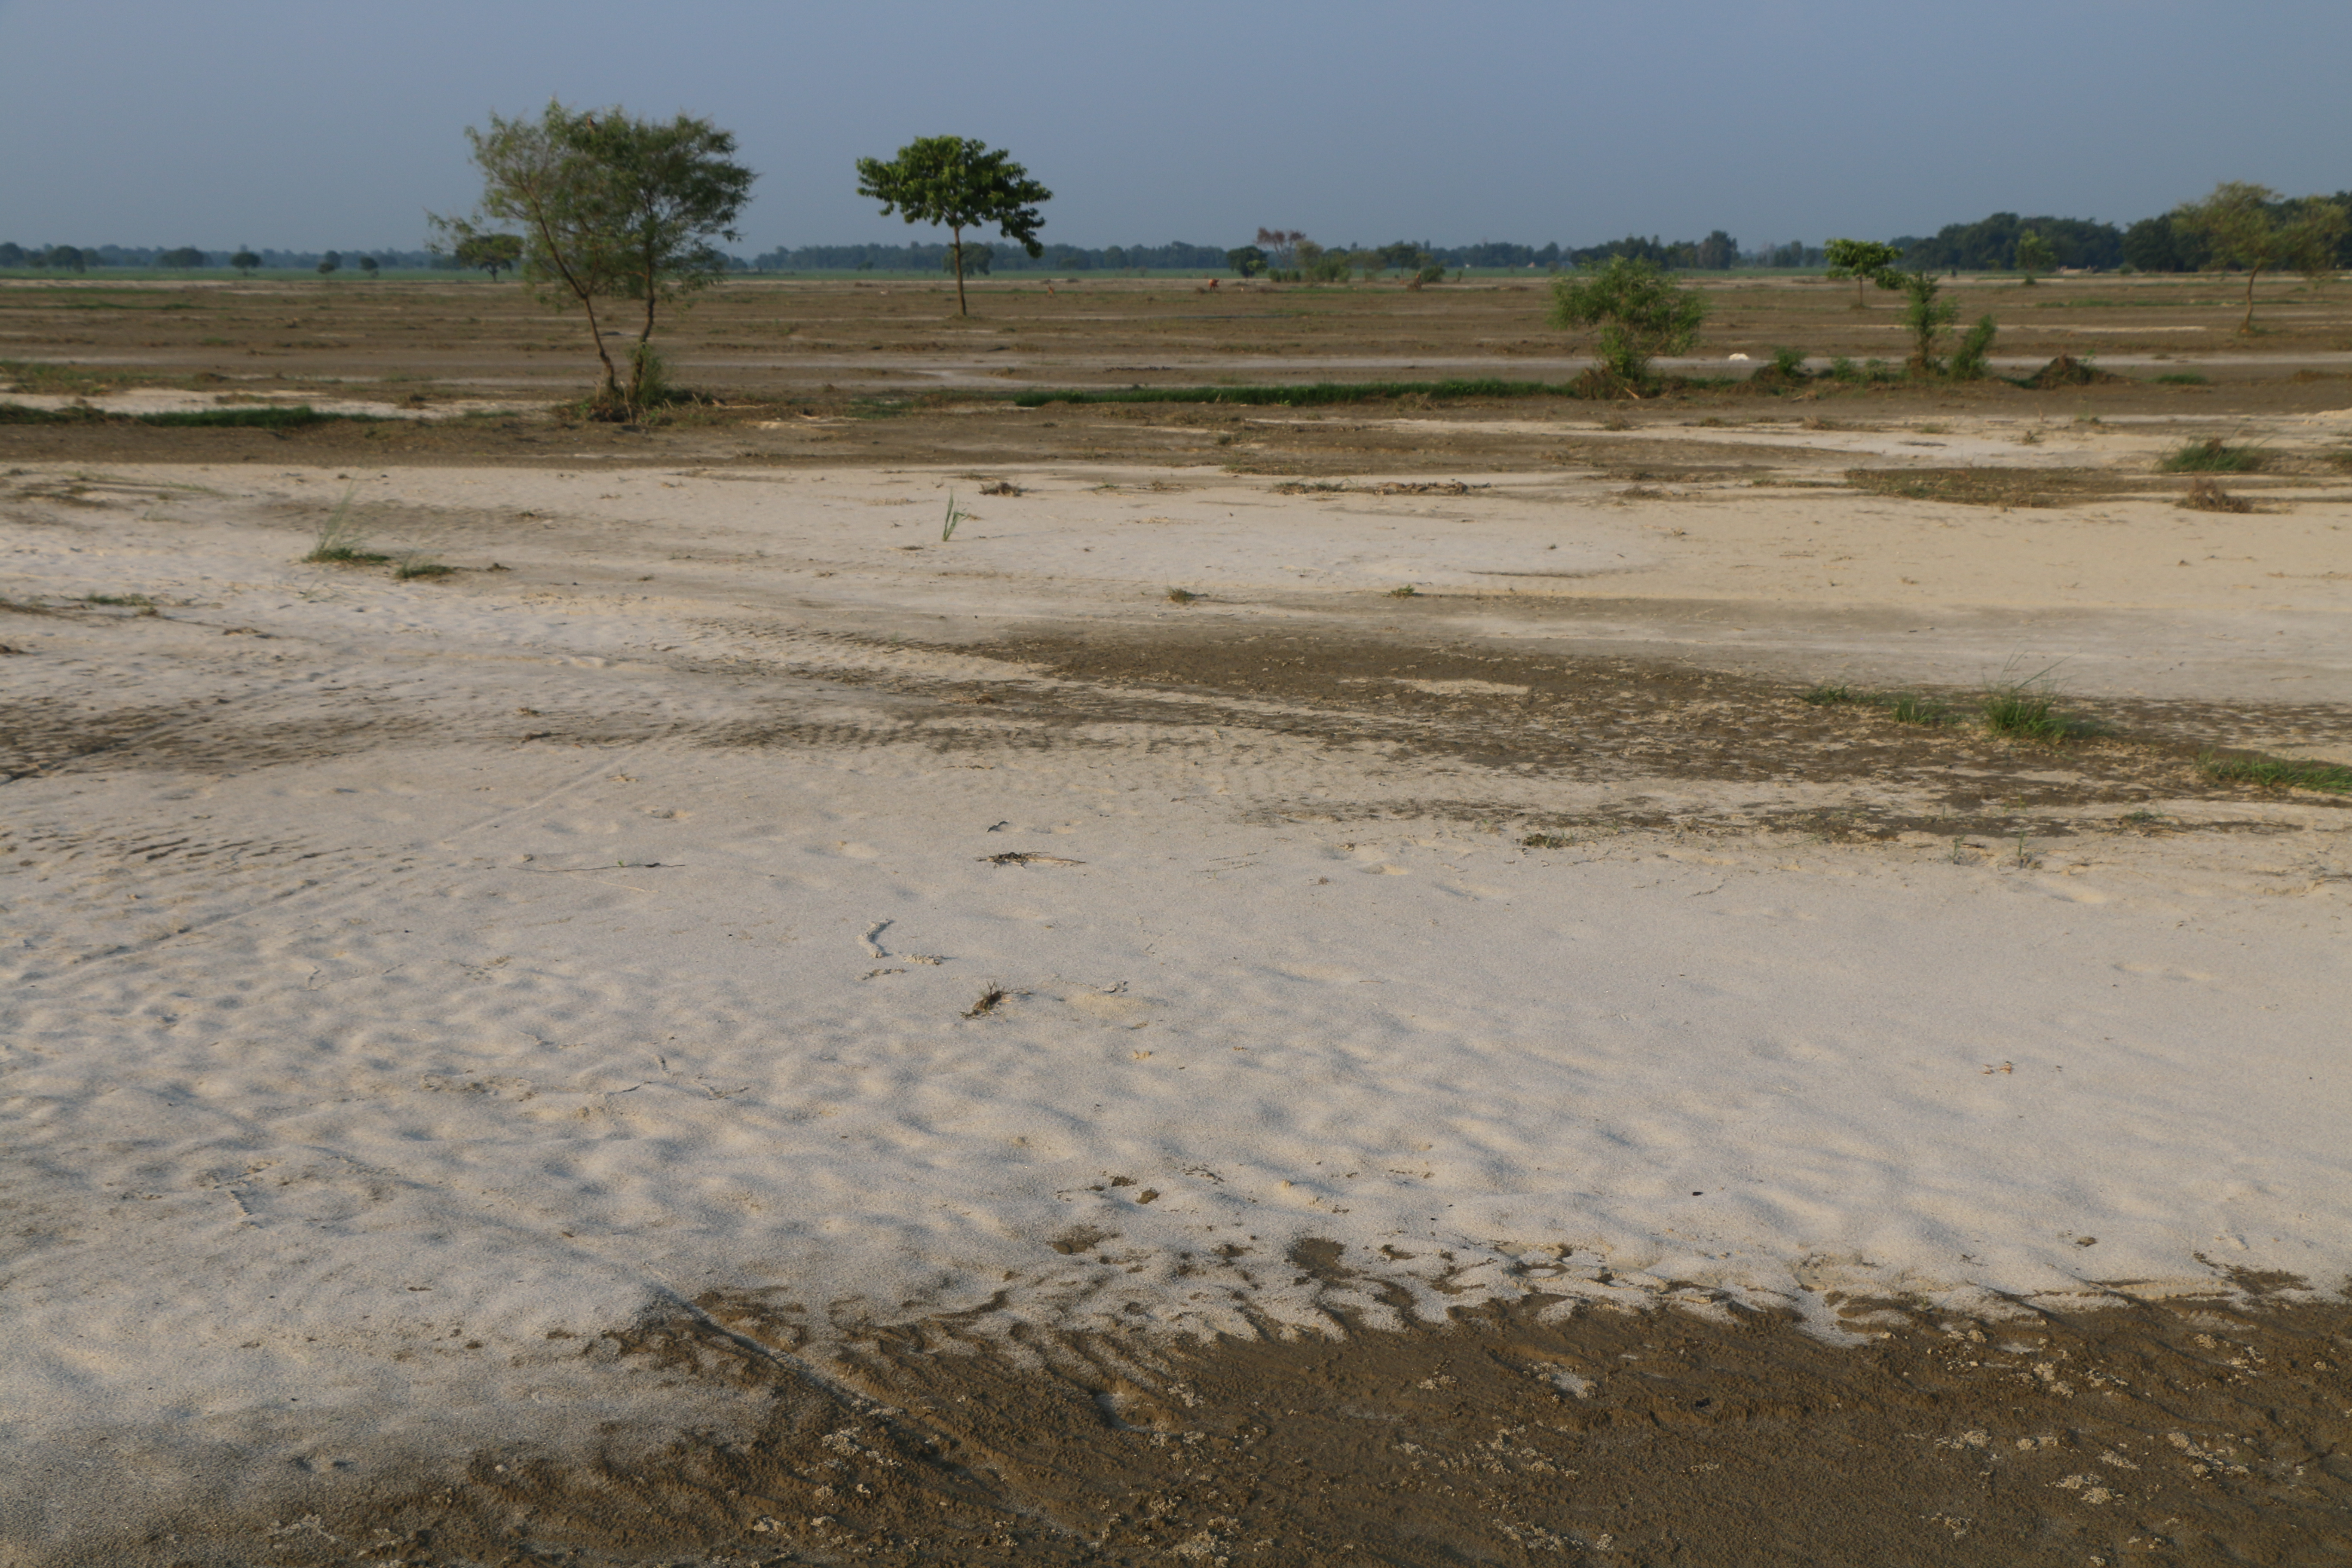 Heavy sand deposited on agricultural land